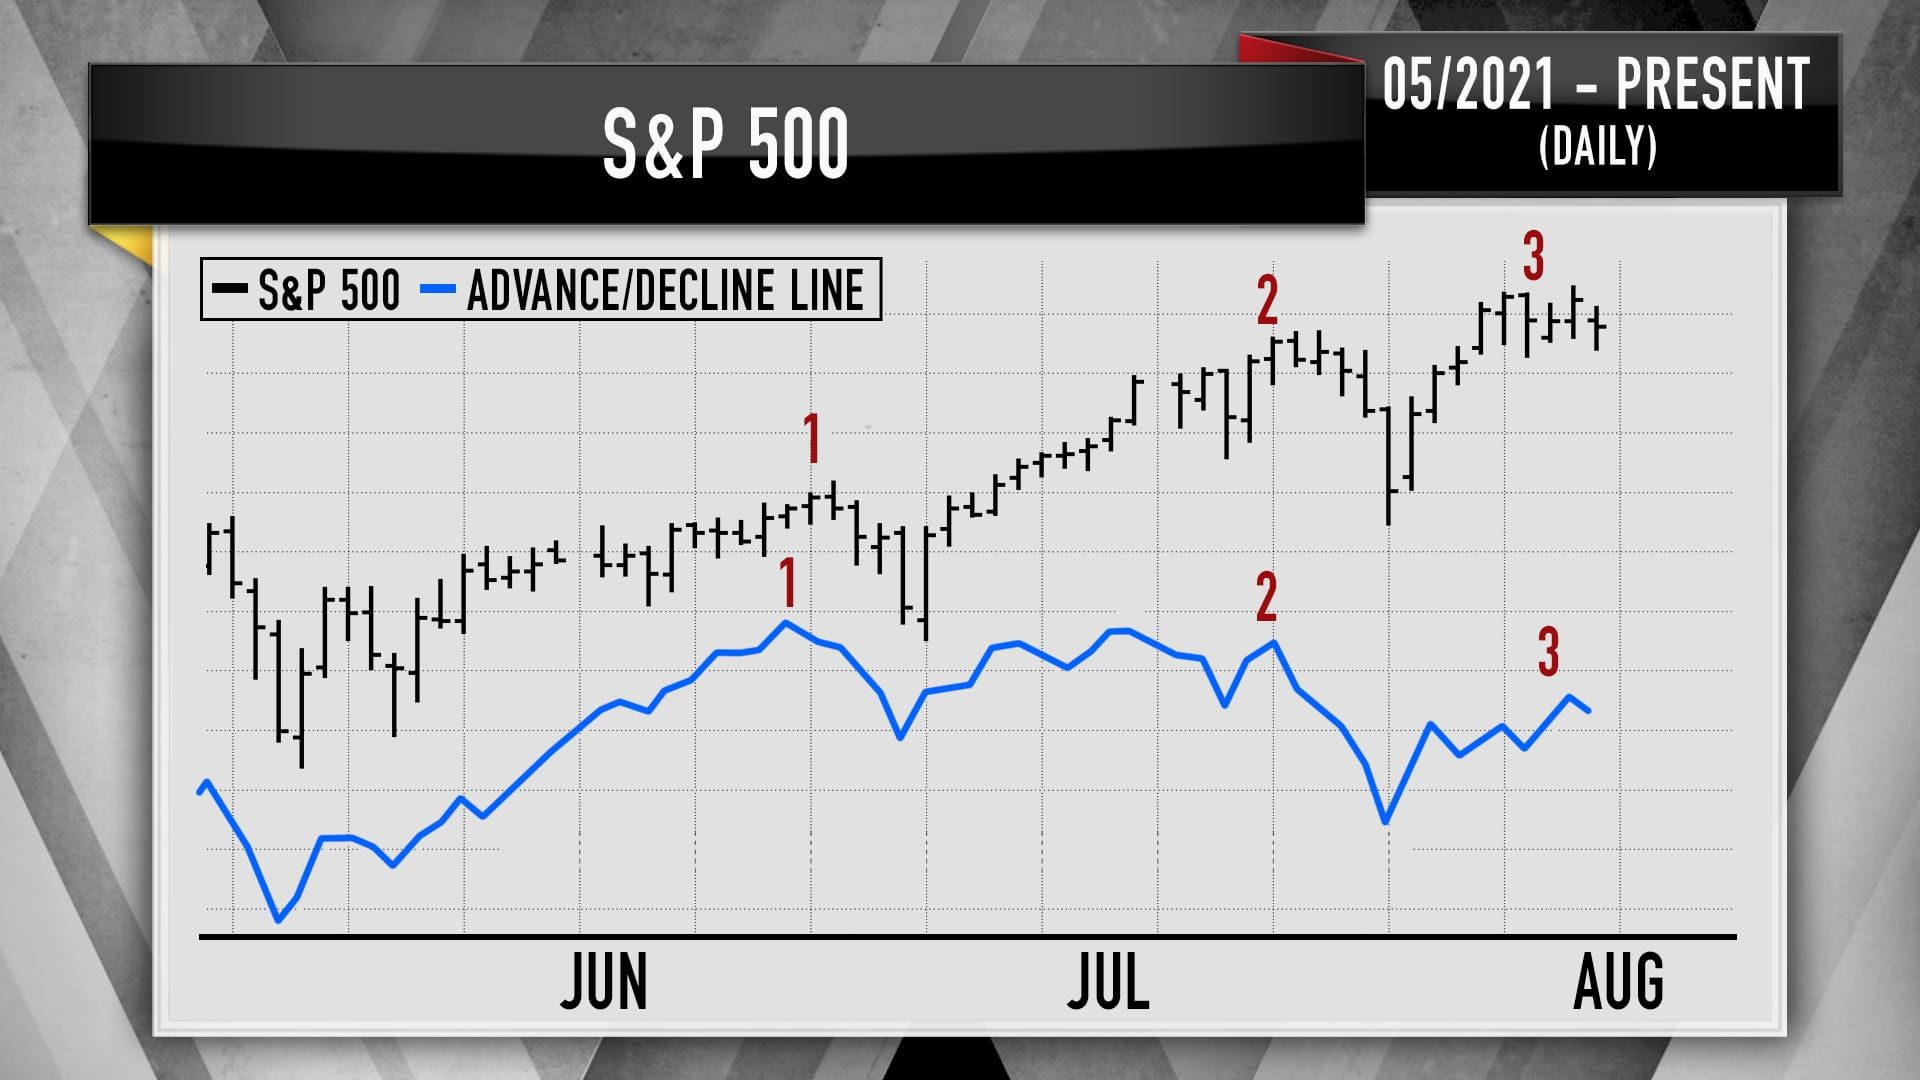 Advance/decline volume in the S&P 500 based on technical analysis from Larry Williams.